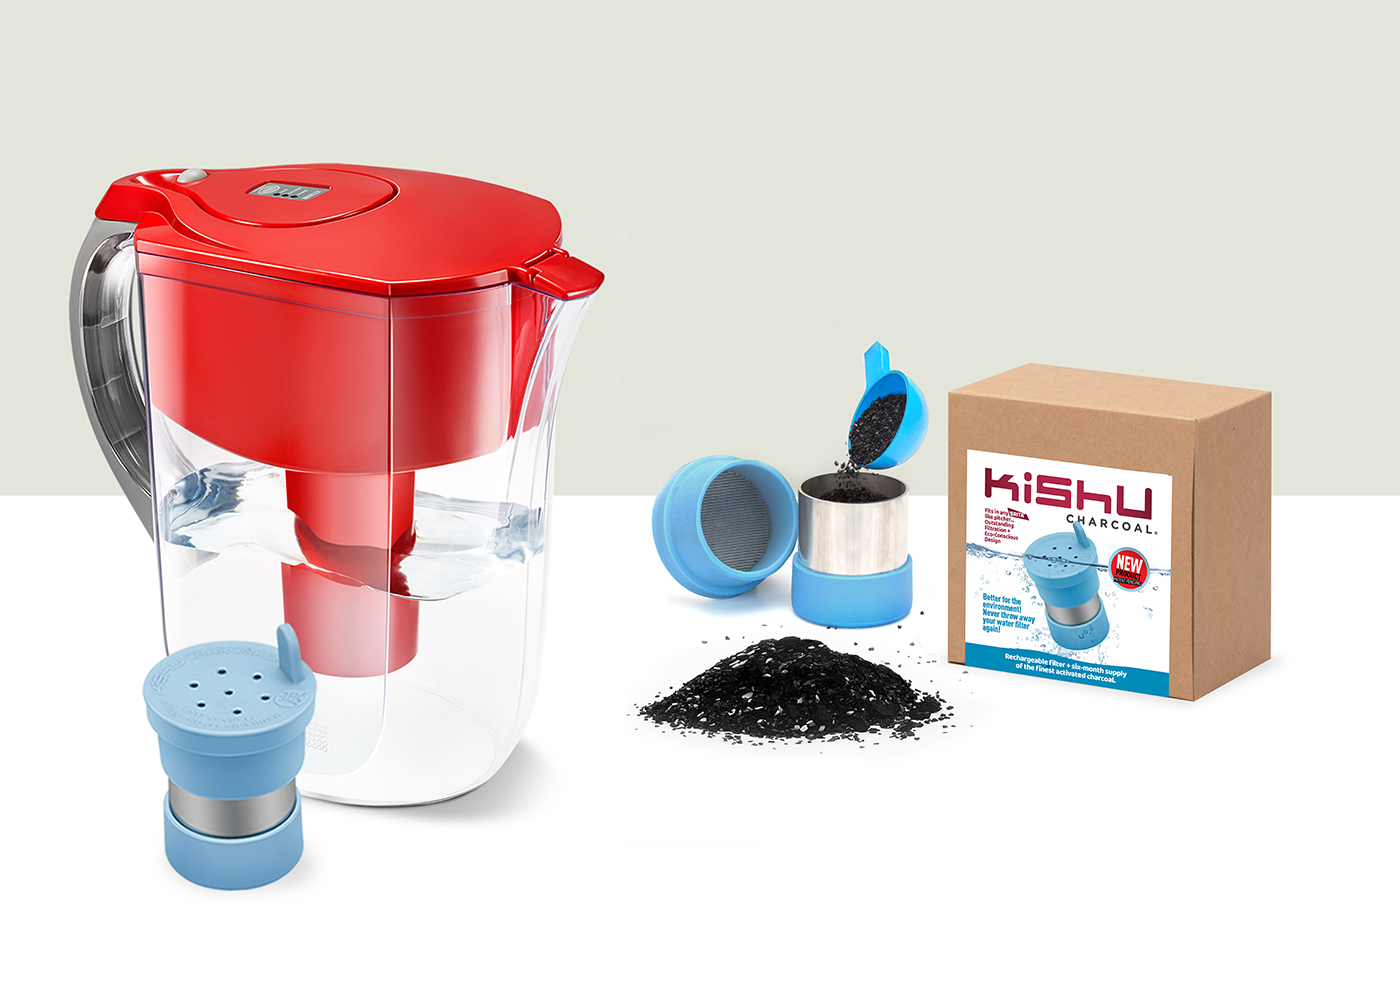 Kishu Charcoal Water Filter for the Brita! Comes with a 6-month supply of granules